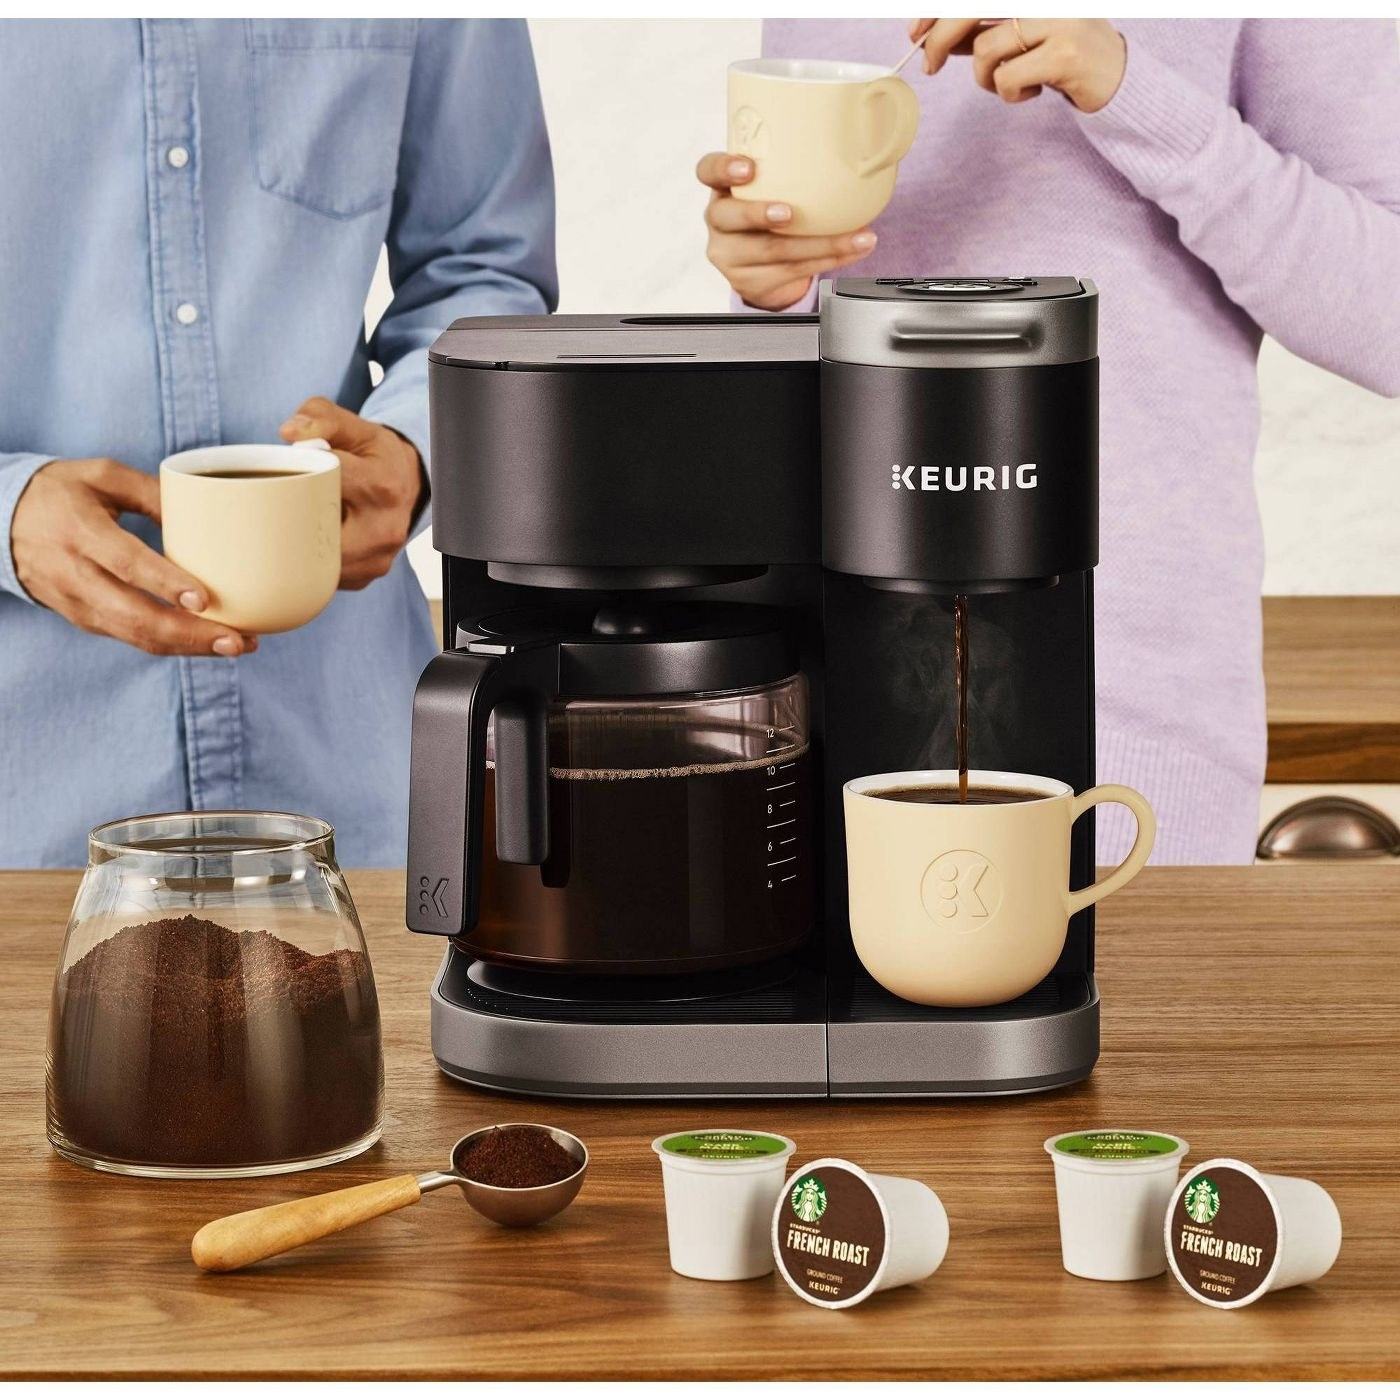 keurig machine with a full coffee pot on the left and one mug on with coffee pouring in on the right